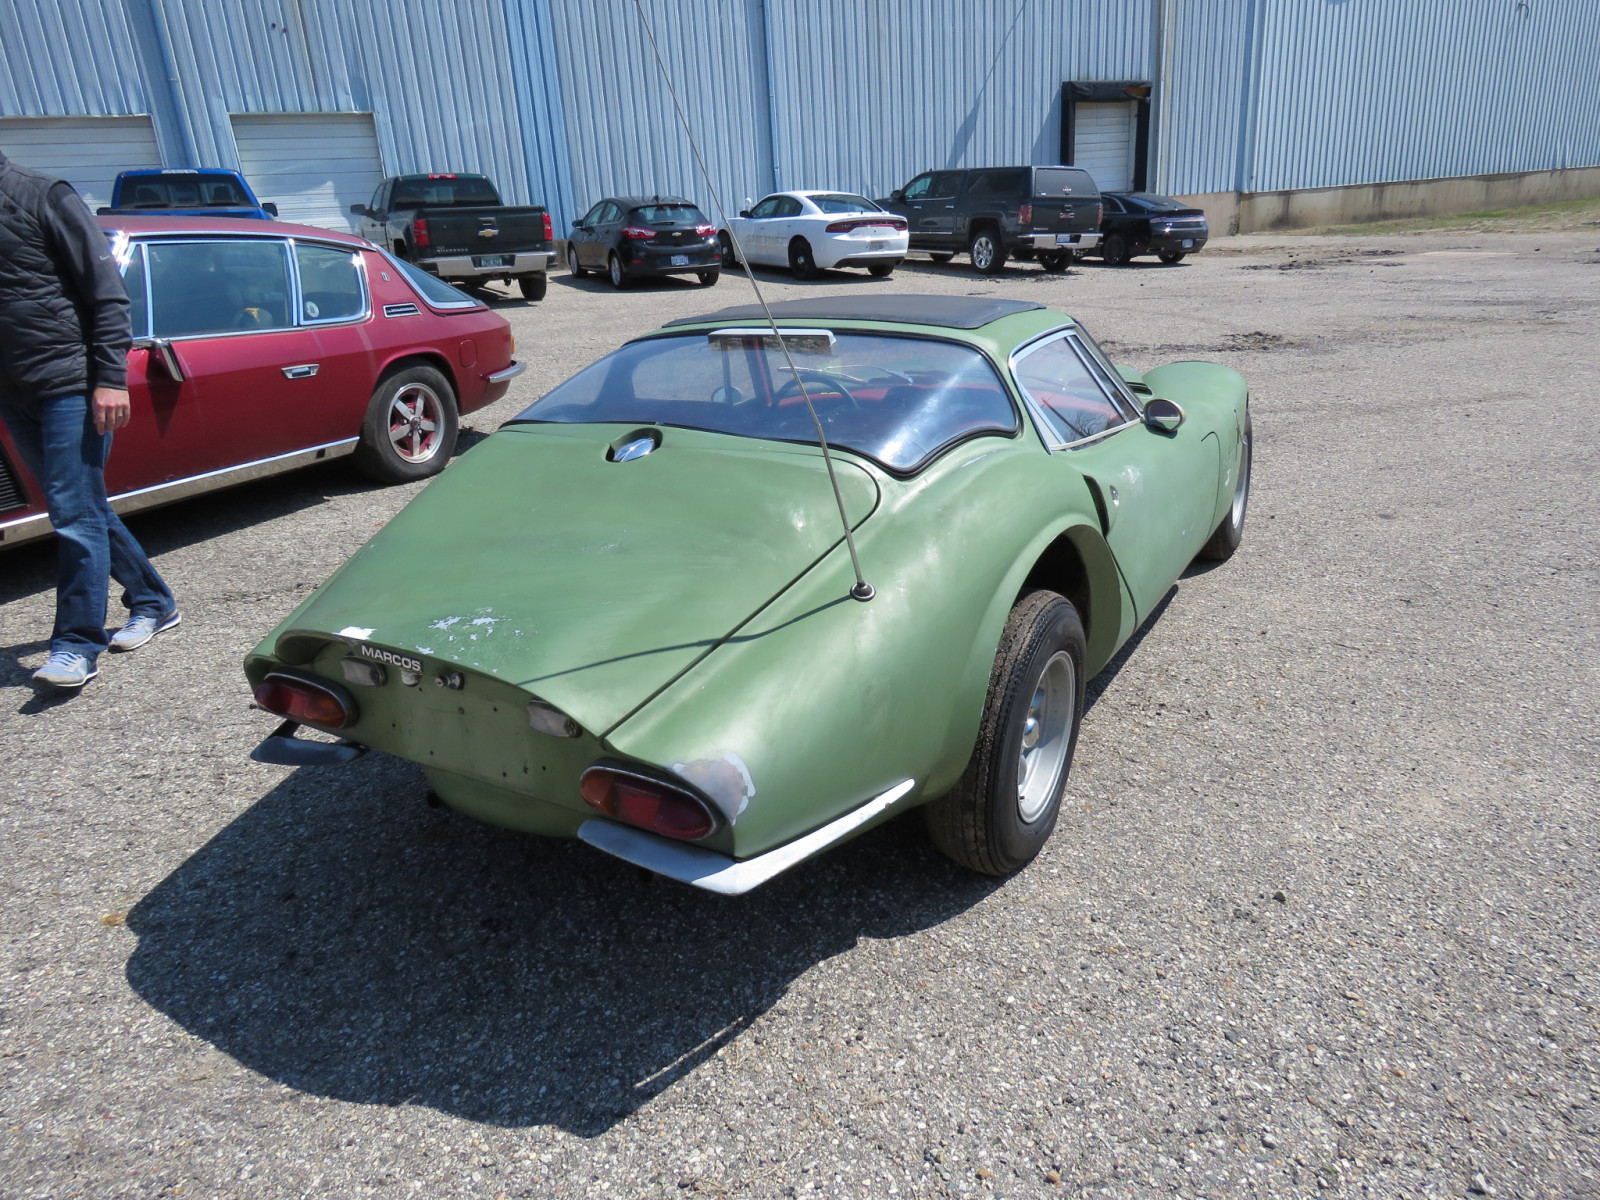 1969 Marcos Model 1600 Coupe - Image 5